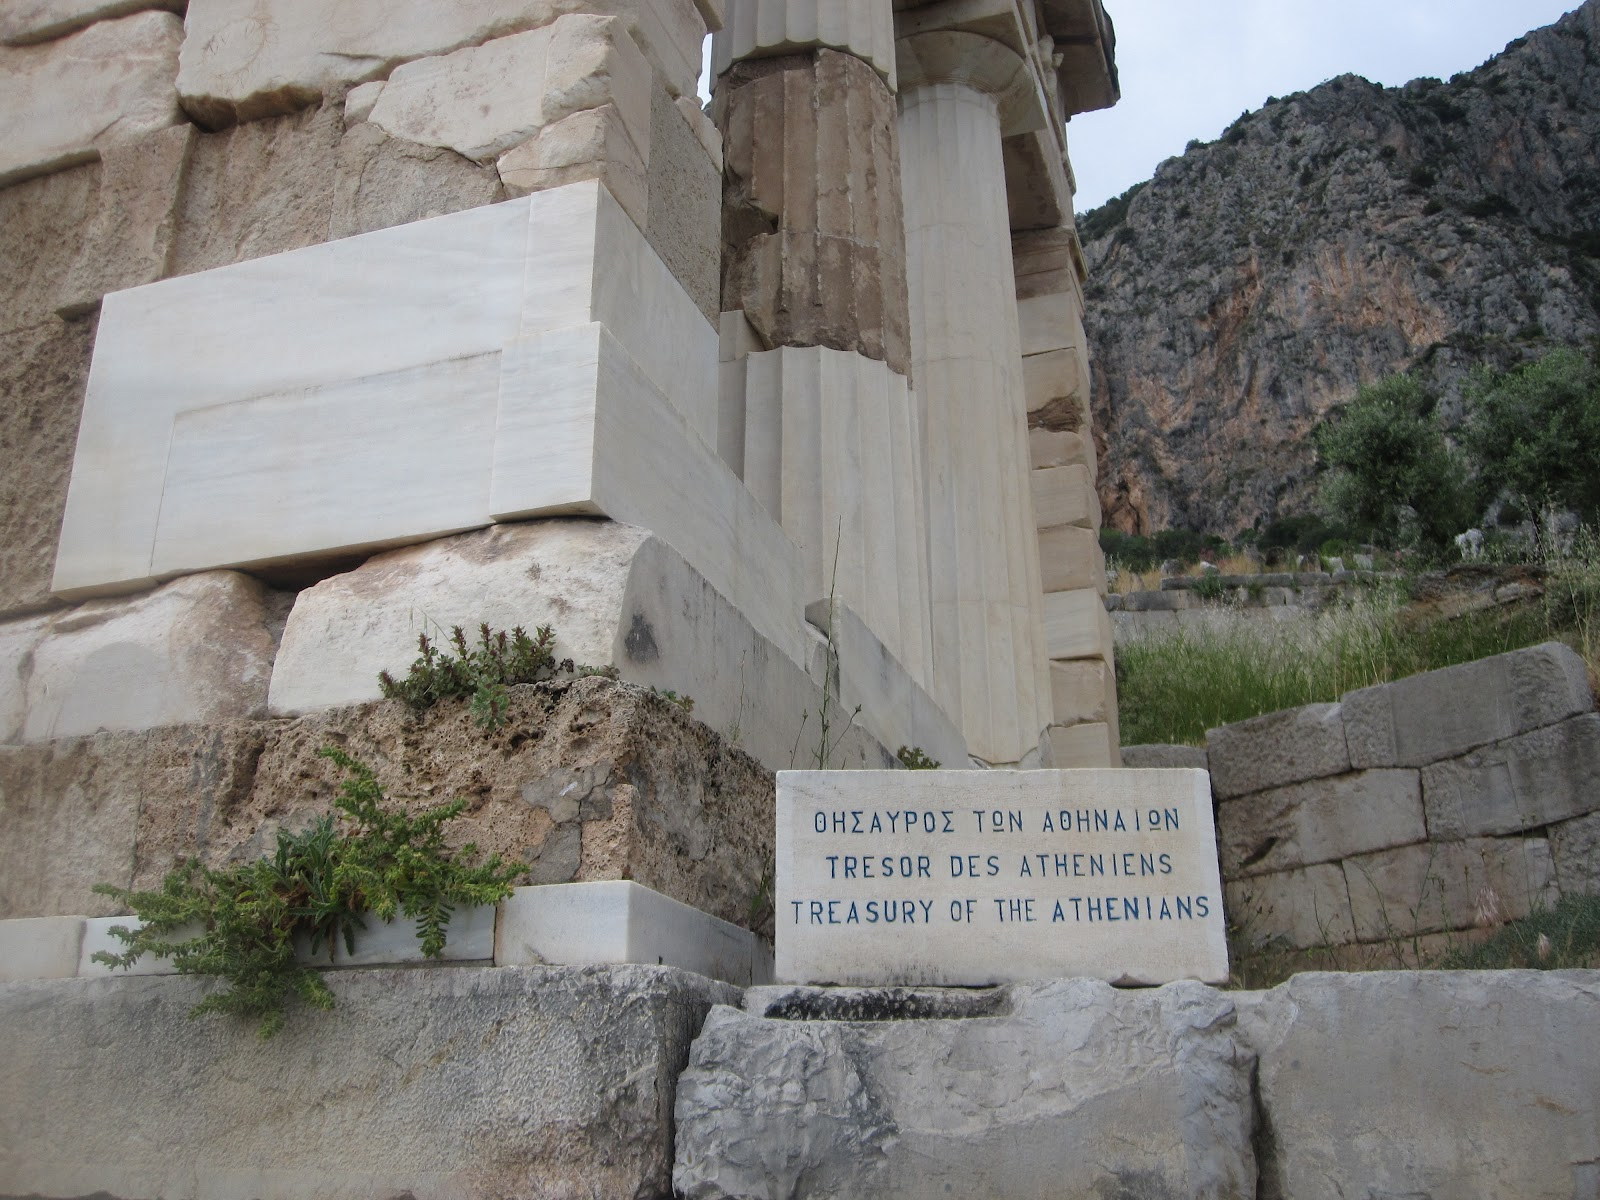 londinoupolis: The treasury of the Athenians in Delphi